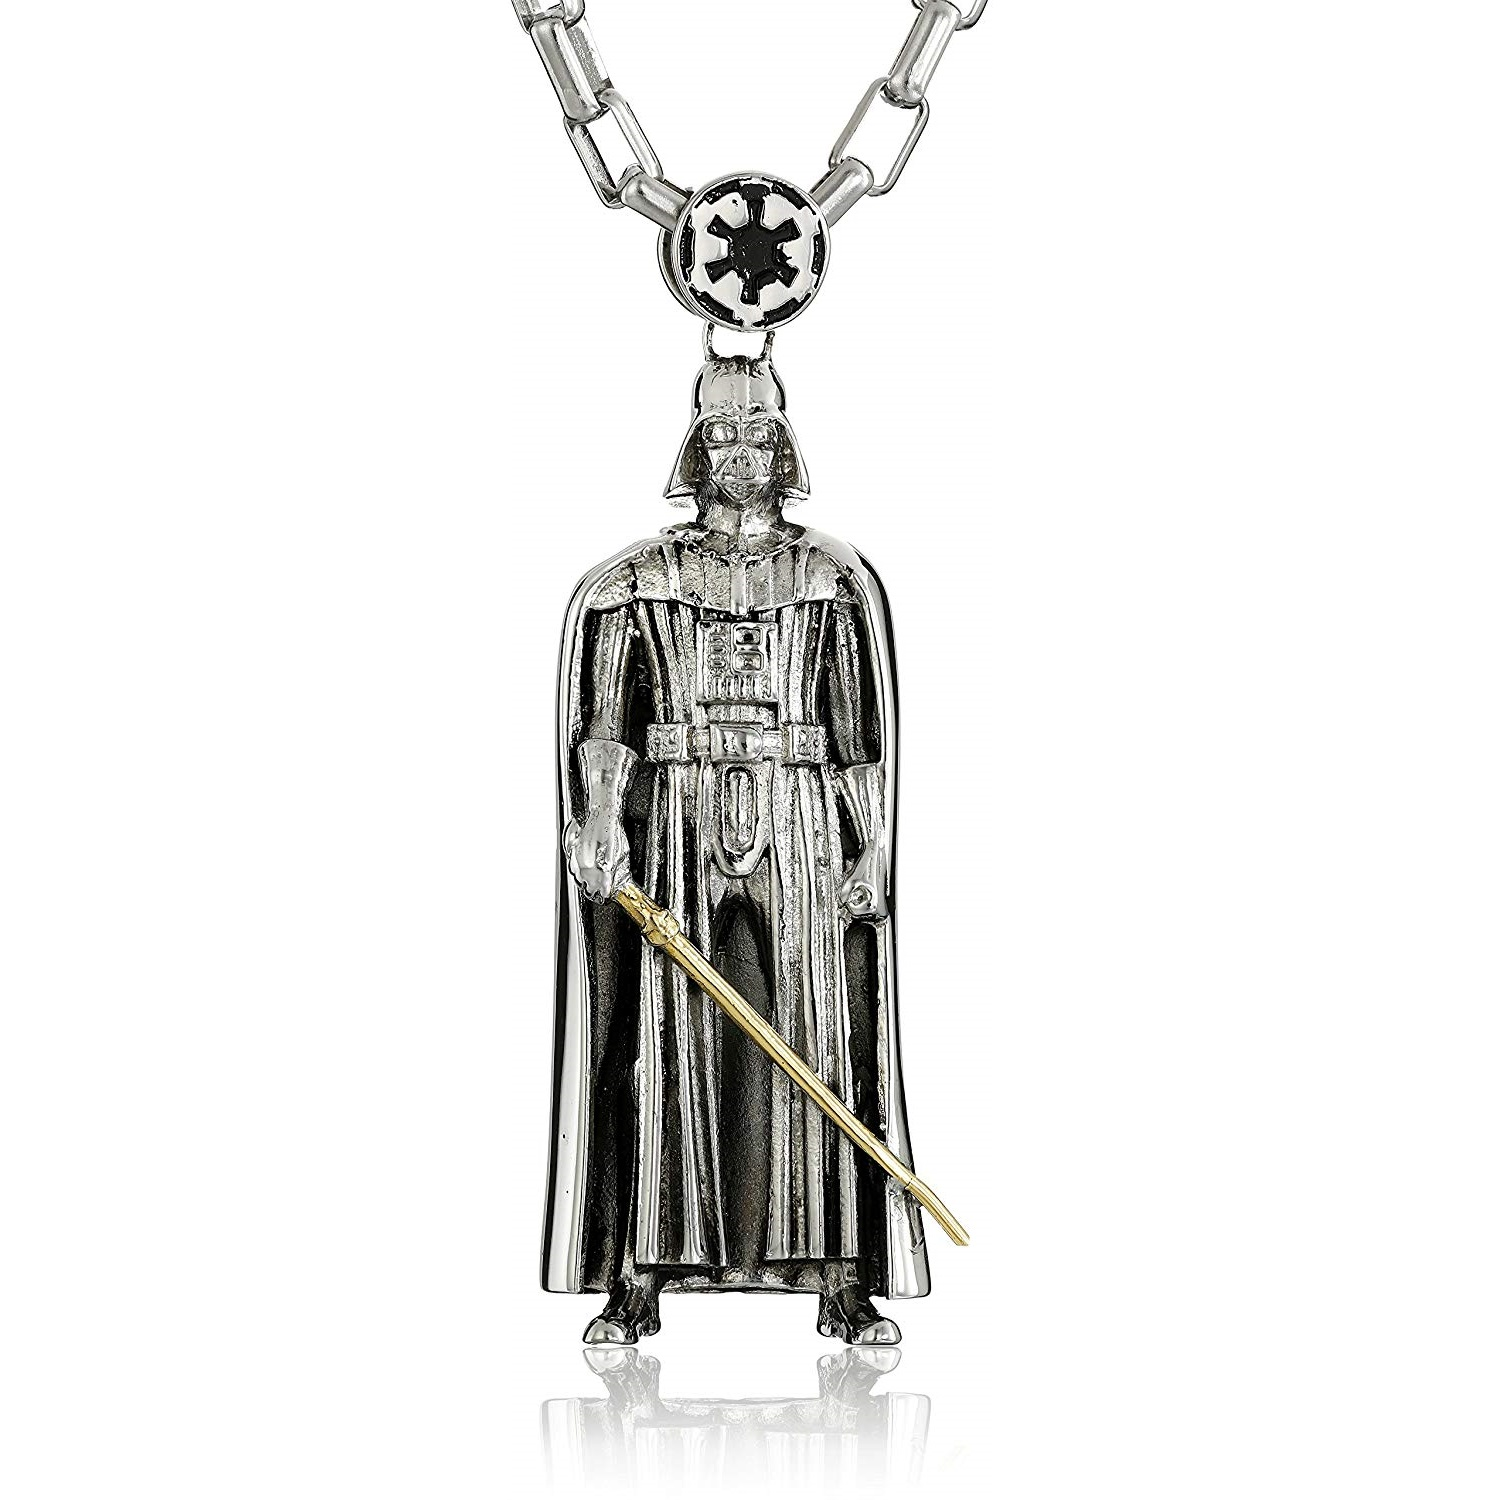 Han Cholo x Star Wars Darth Vader Stainless Steel Necklace on Amazon